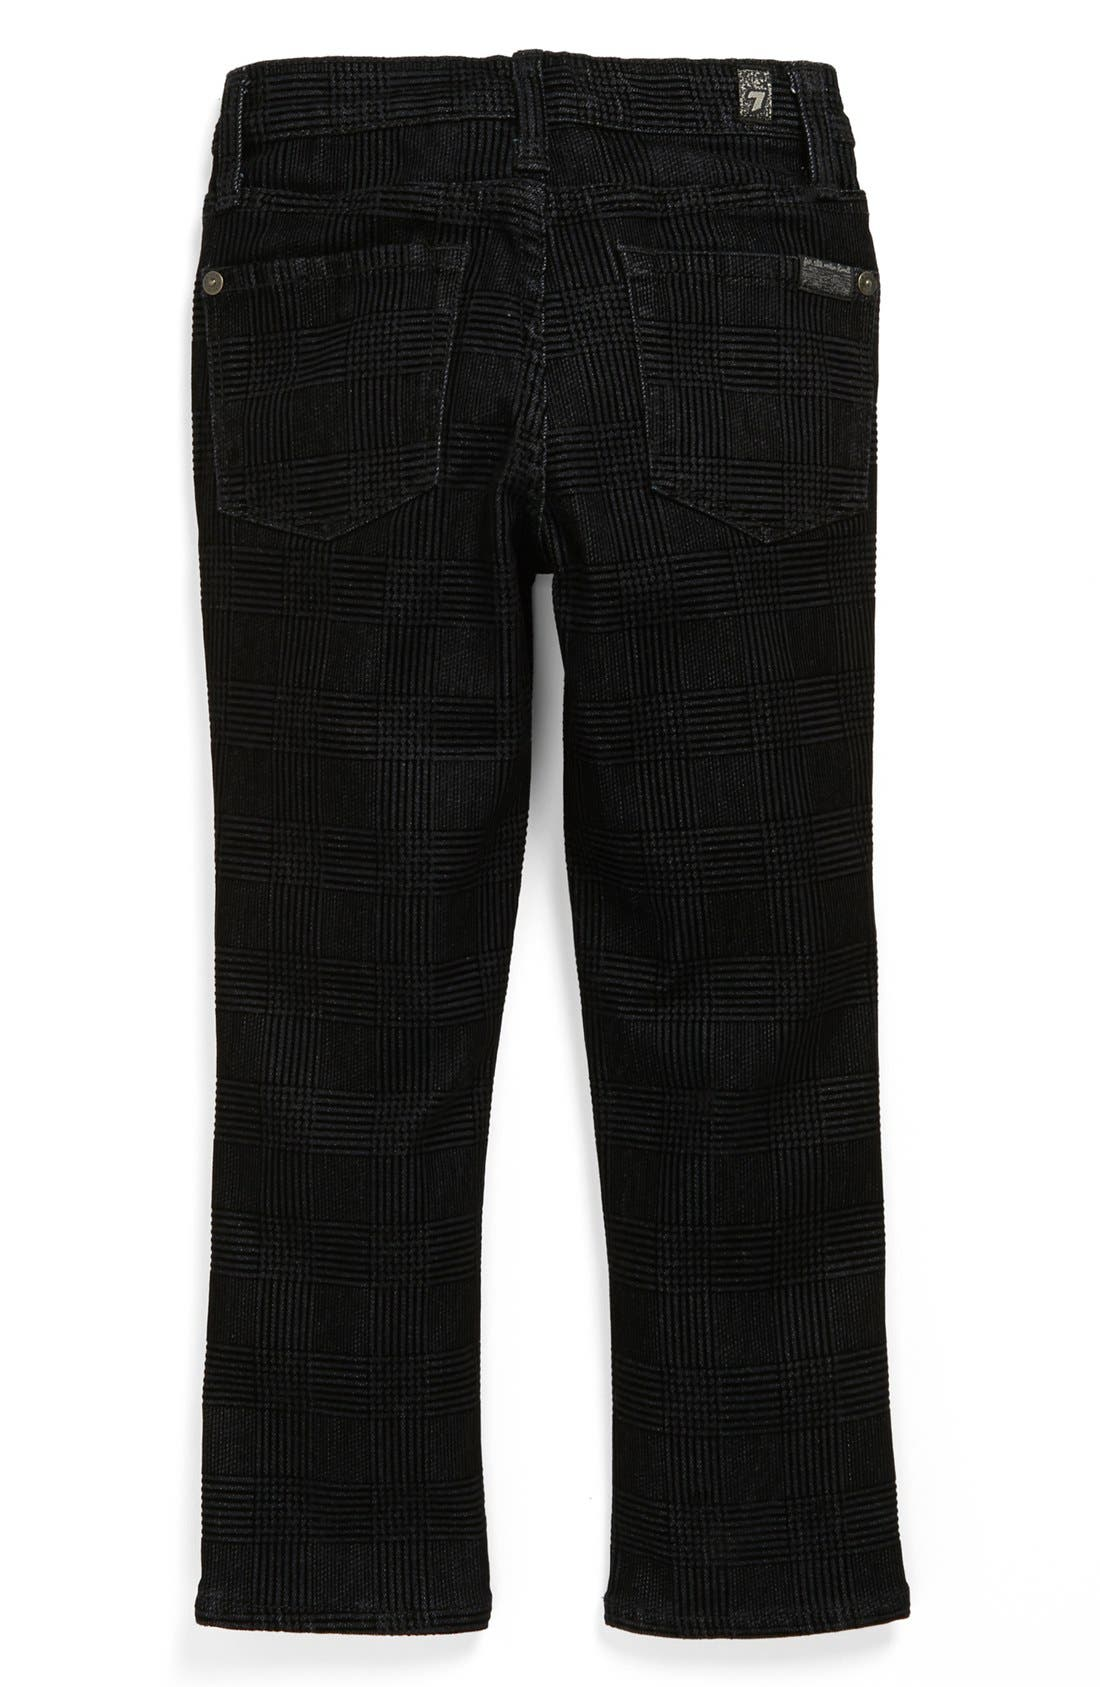 Alternate Image 1 Selected - 7 For All Mankind® 'Slimmy' Flocked Slim Fit Jeans (Toddler Boys)